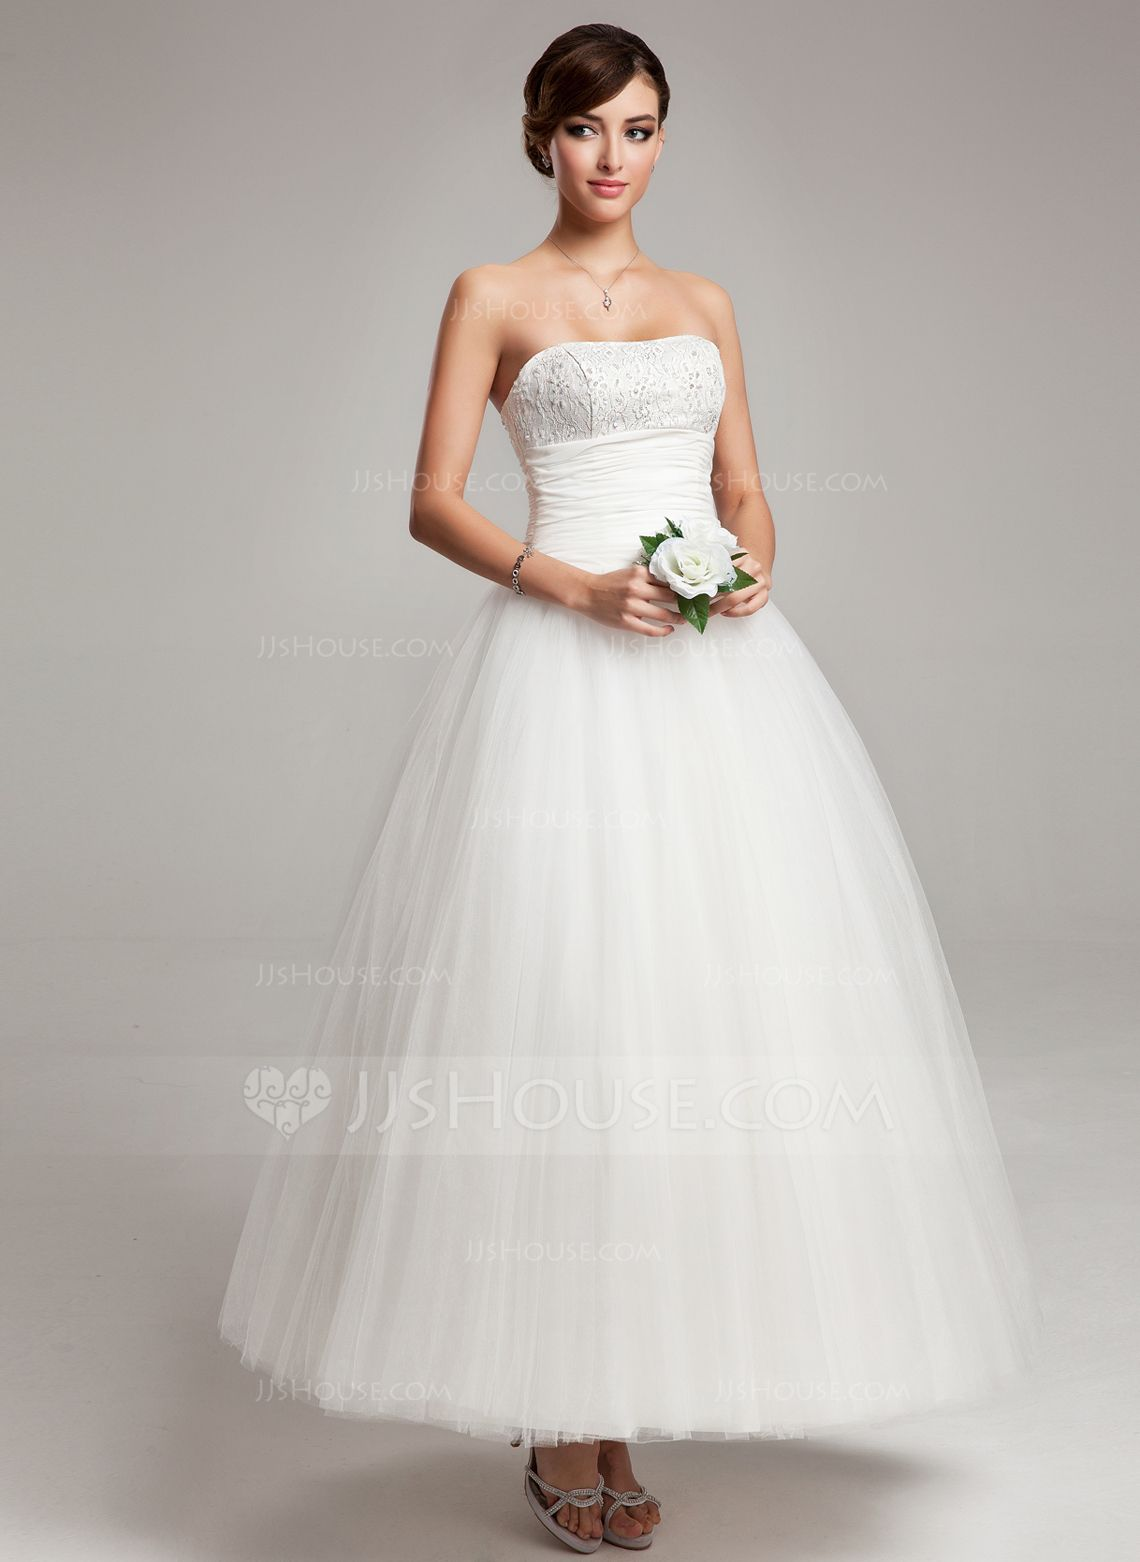 US$ 16.16] Ball-Gown Sweetheart Ankle-Length Chiffon Tulle